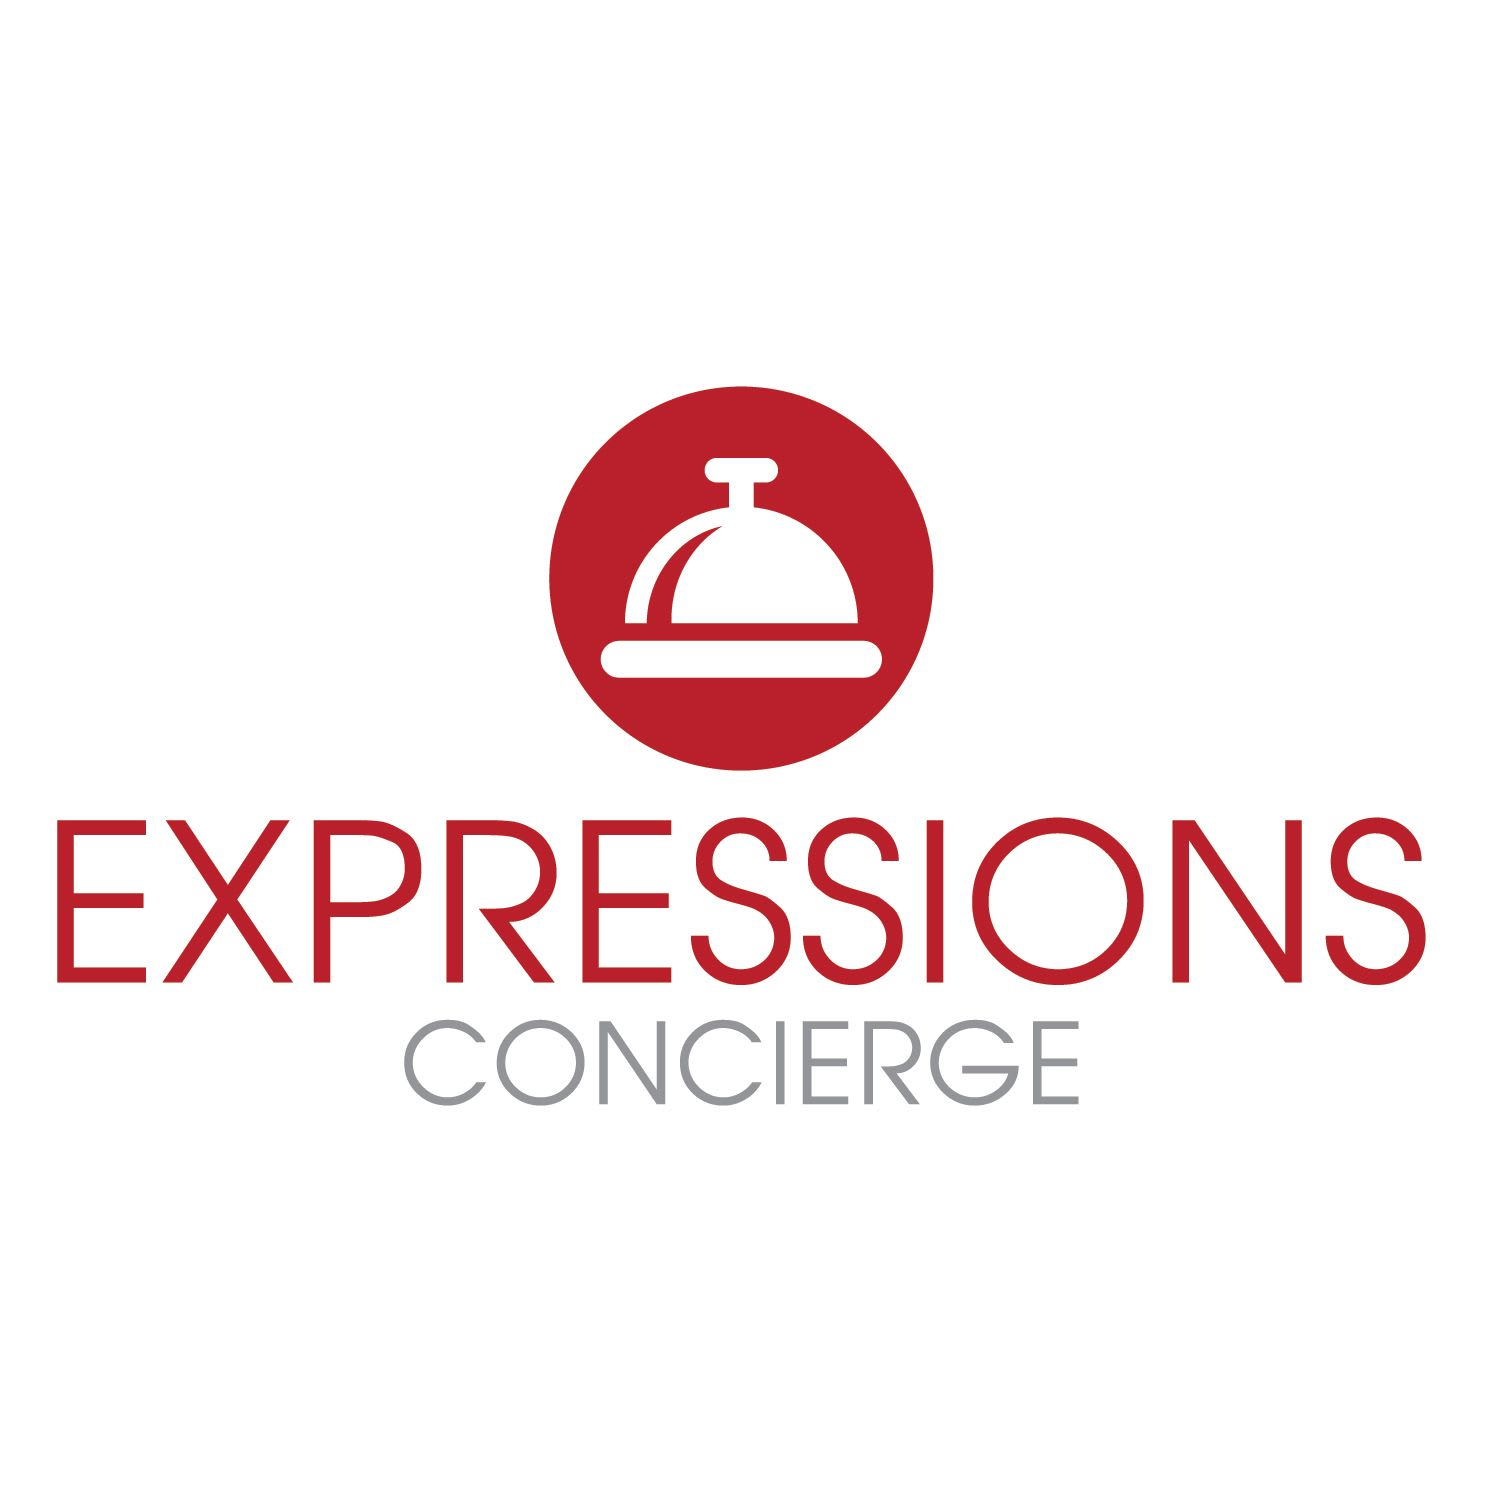 Link to Expressions Concierge at Discovery Village At Sandhill in Columbia, South Carolina